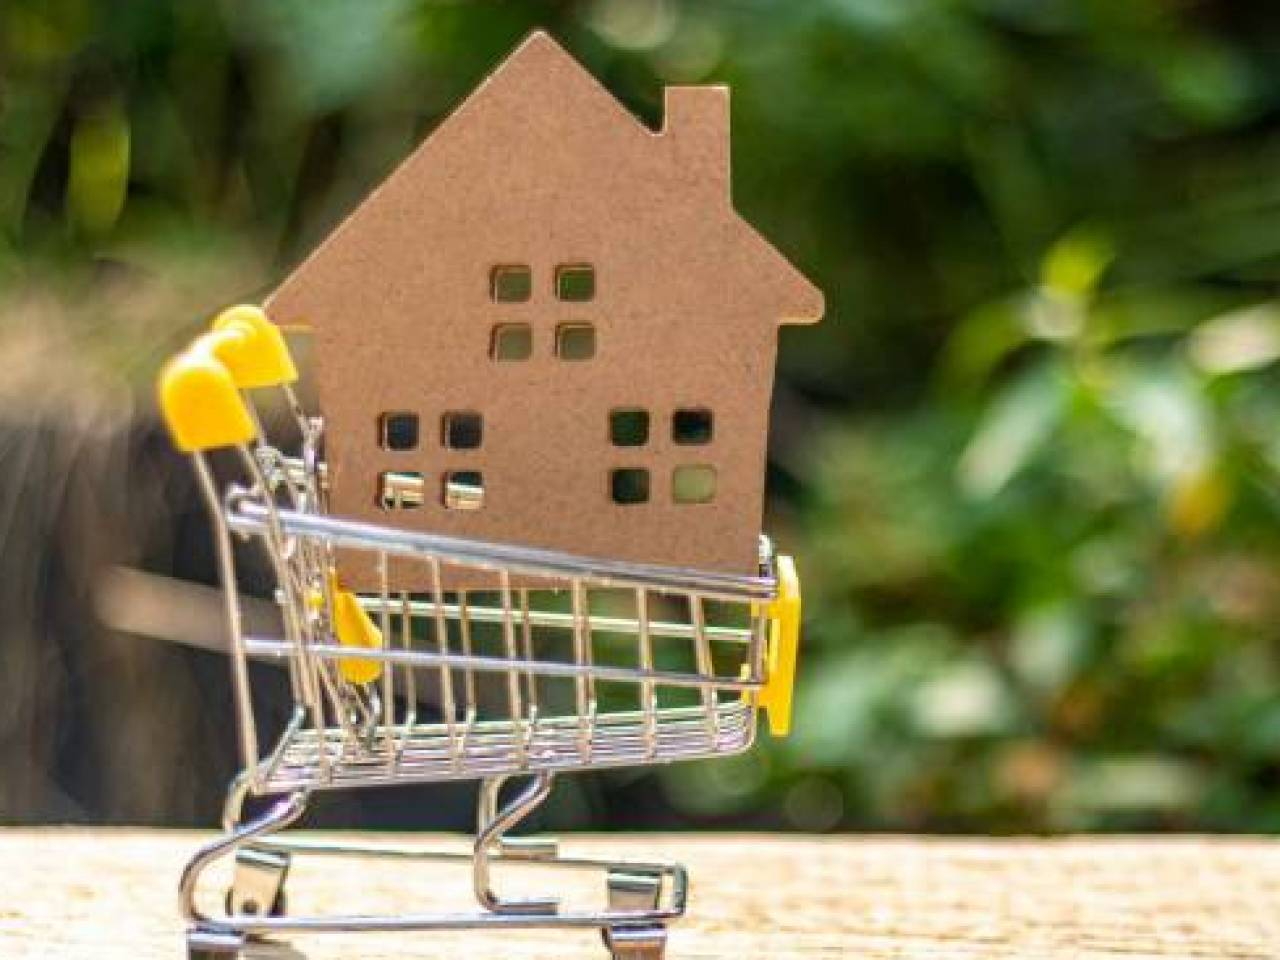 Yellow shopping cart and small wooden toy house on natural green blur background.